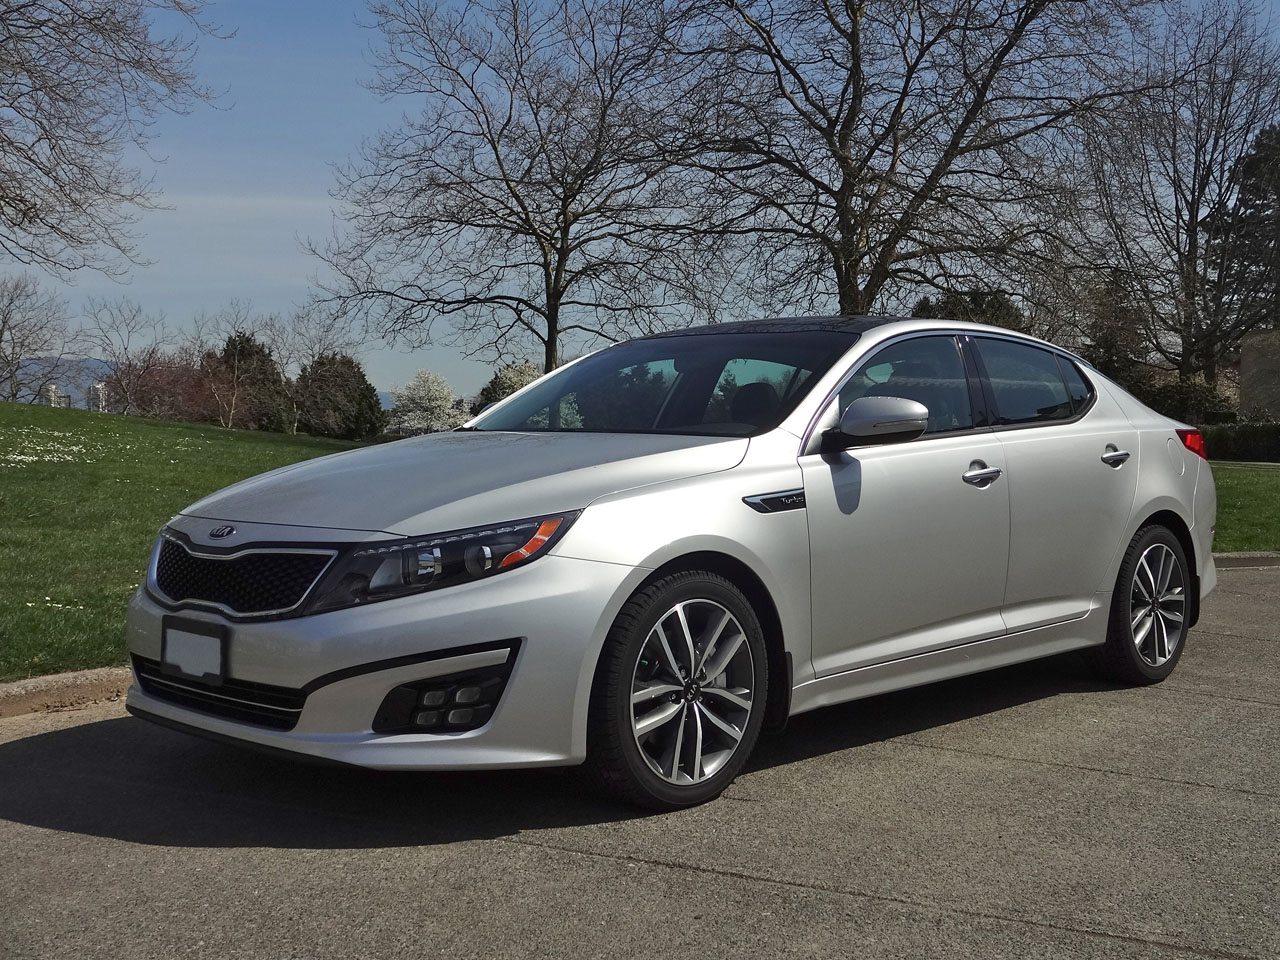 2014 Kia Optima SX Turbo Road Test Review | The Car Magazine